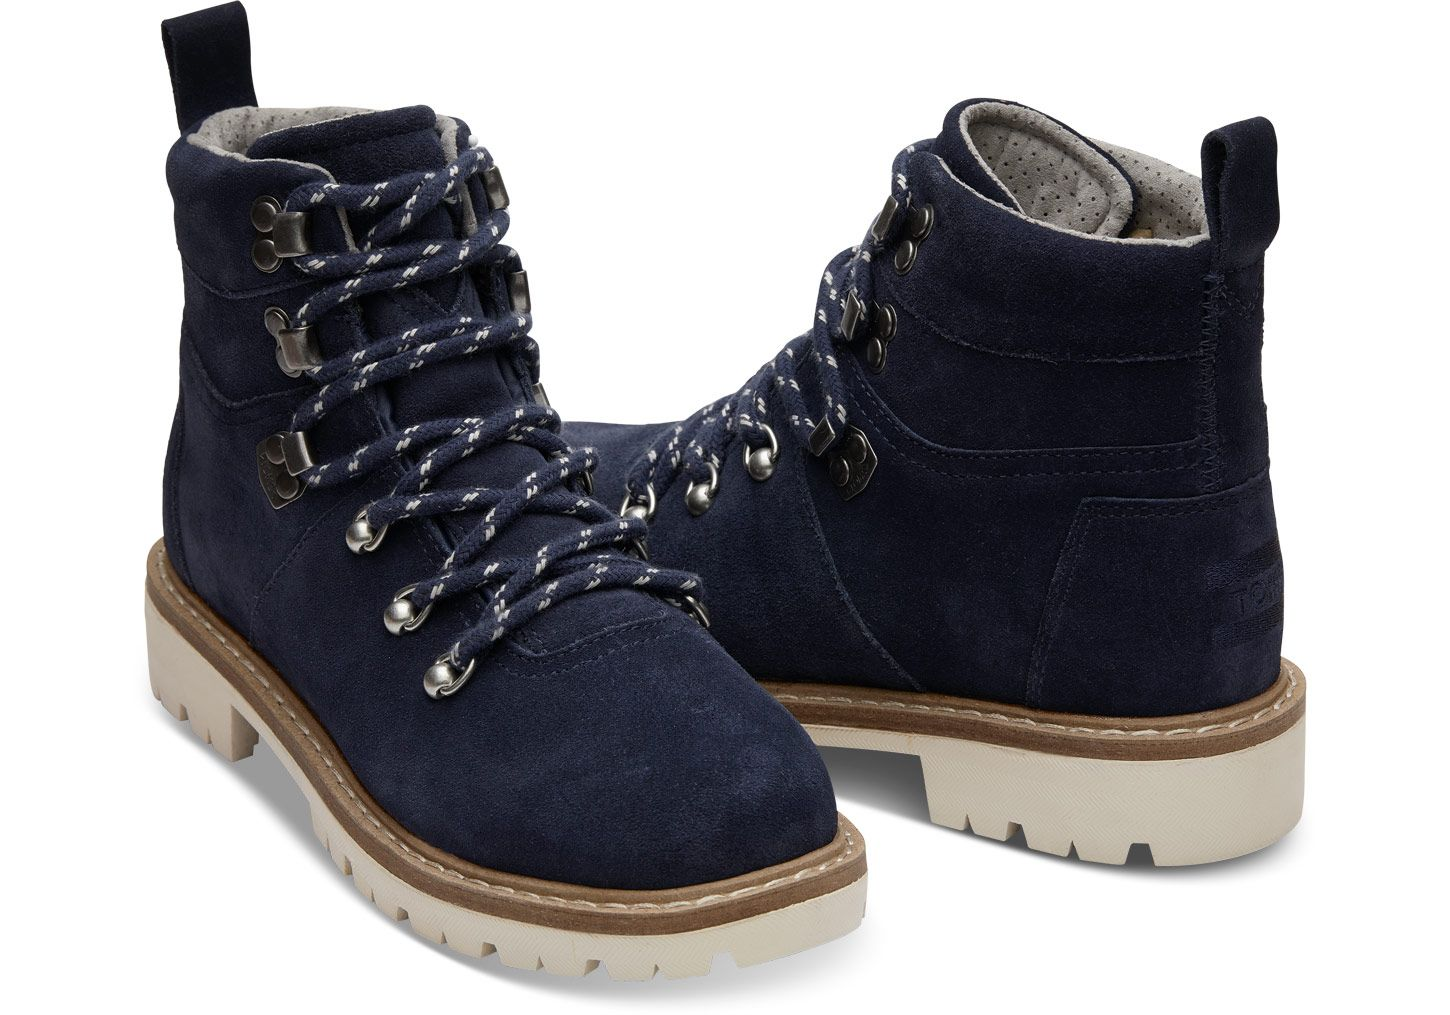 eac3b758677 Waterproof Navy Suede Women's Summit Boots | TOMS®️ | Shoes ...